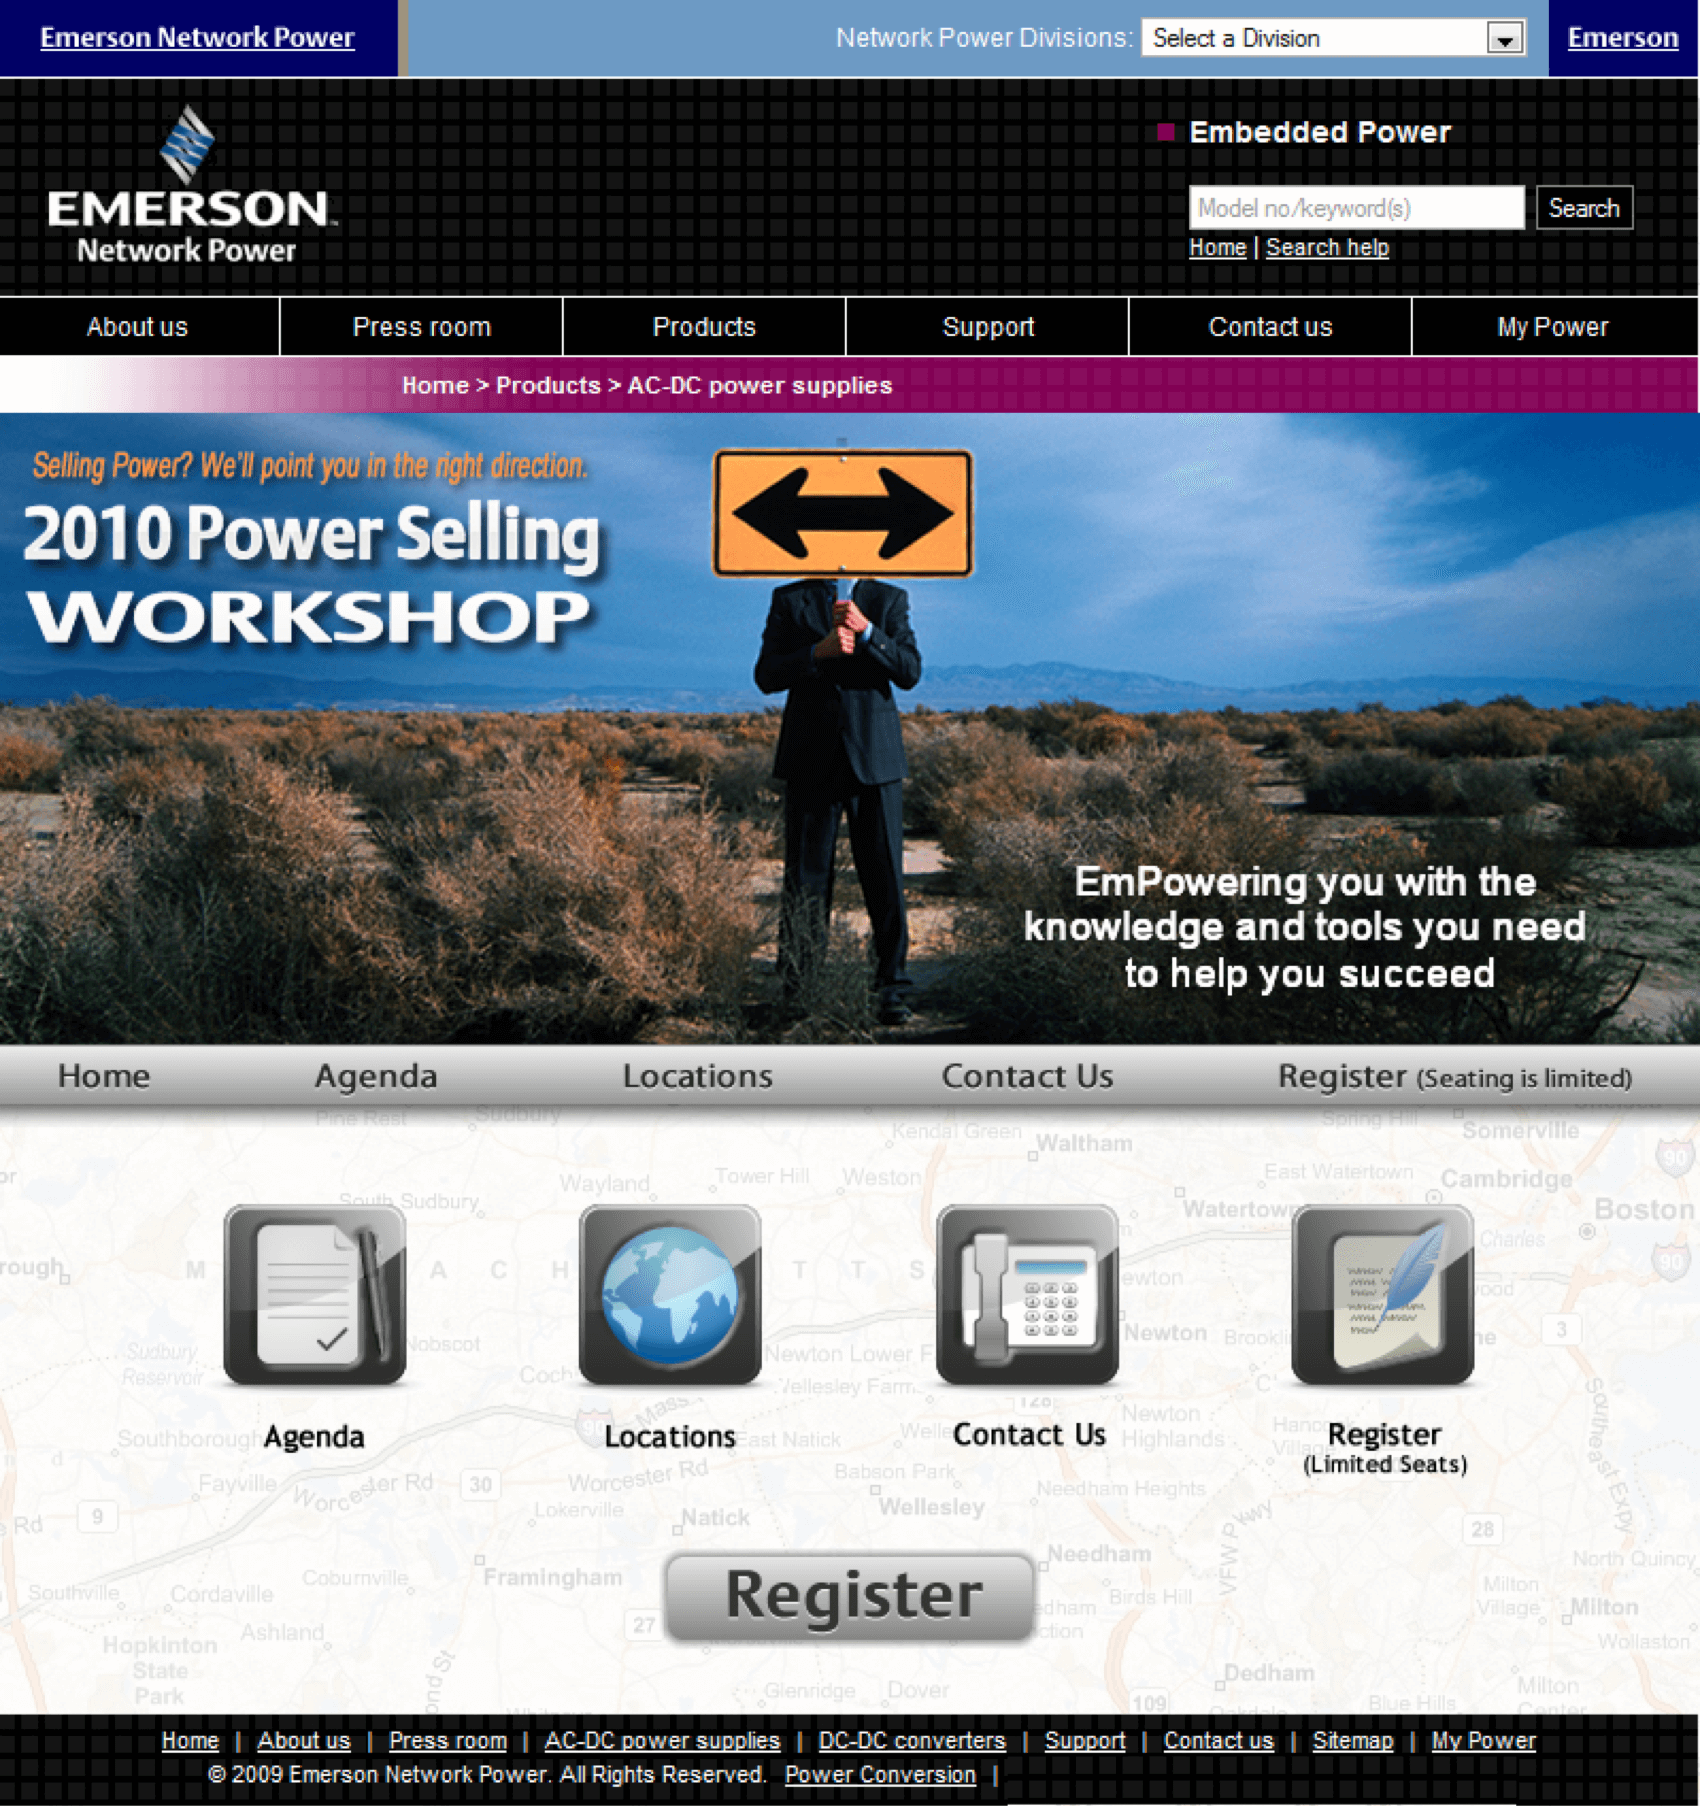 Emerson-AC-DC-Power-Supplies-Conference-Roadshow-Website-Design-Conference